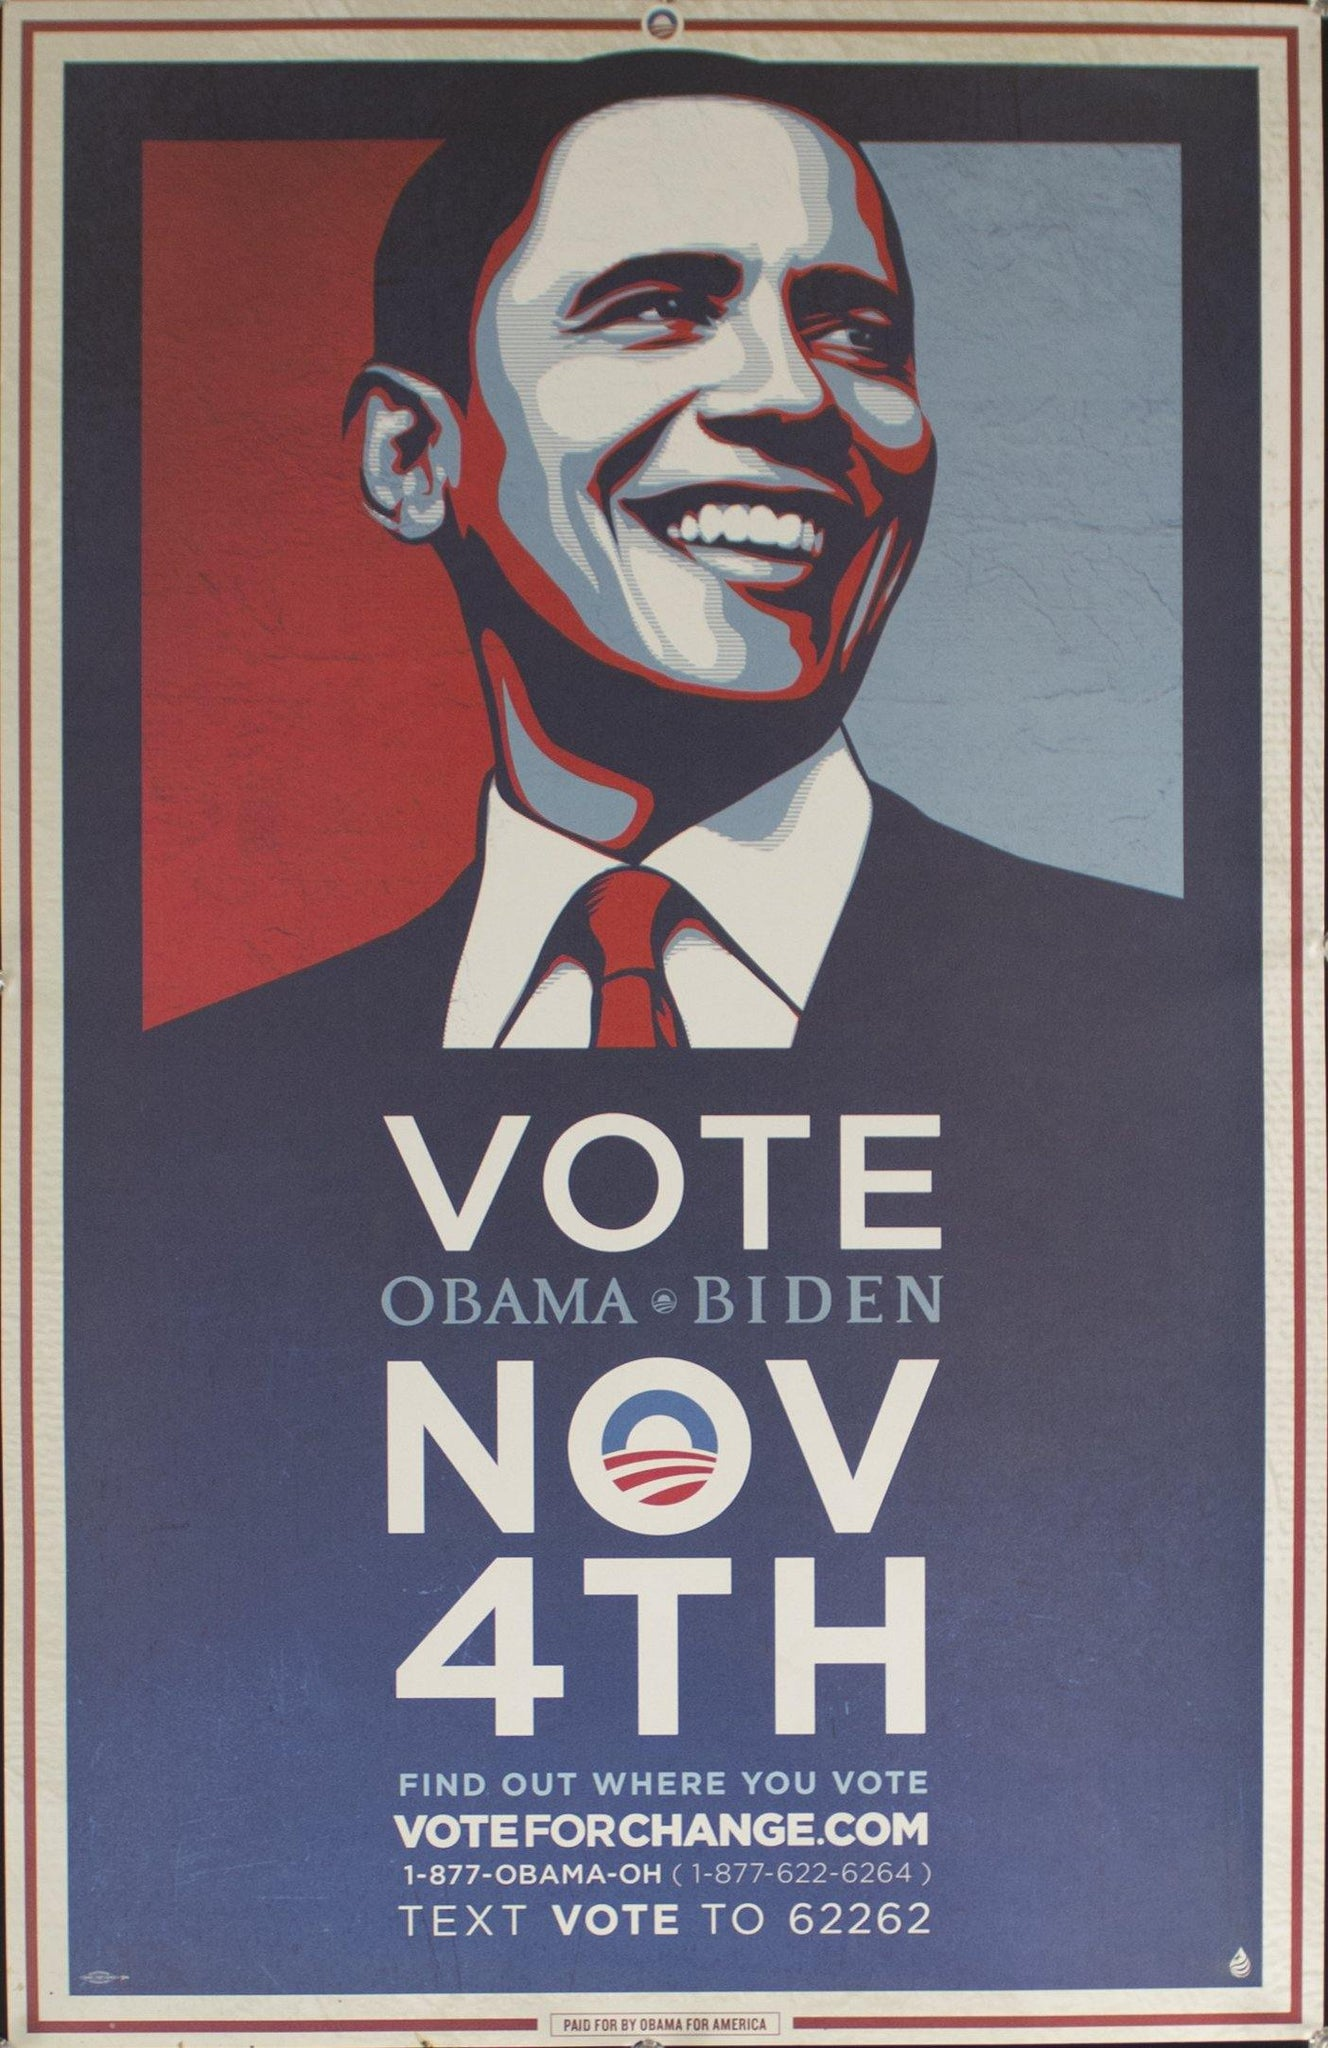 2008 Vote Obama-Biden November 4th | Find out where you vote voteforchange.com | Text VOTE to 62262